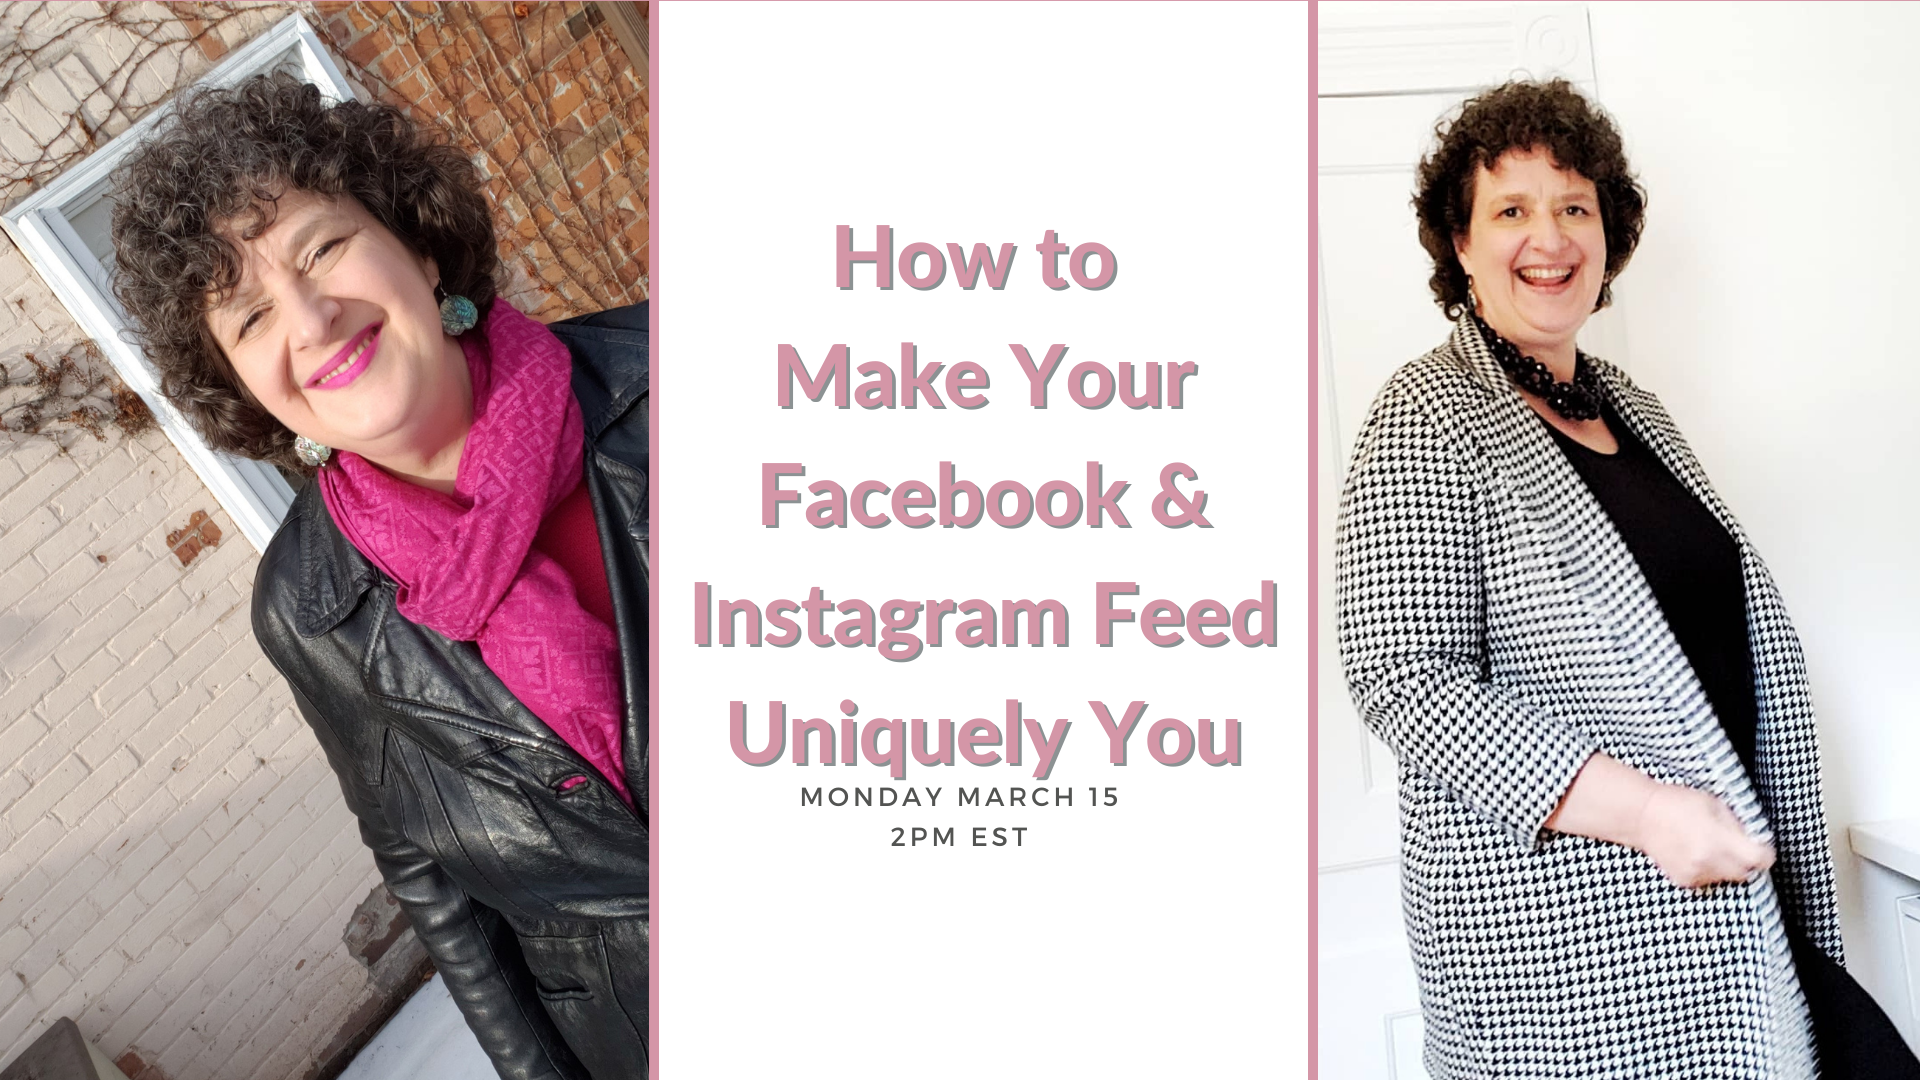 How to Make Your Facebook/Instagram Feed Uniquely You